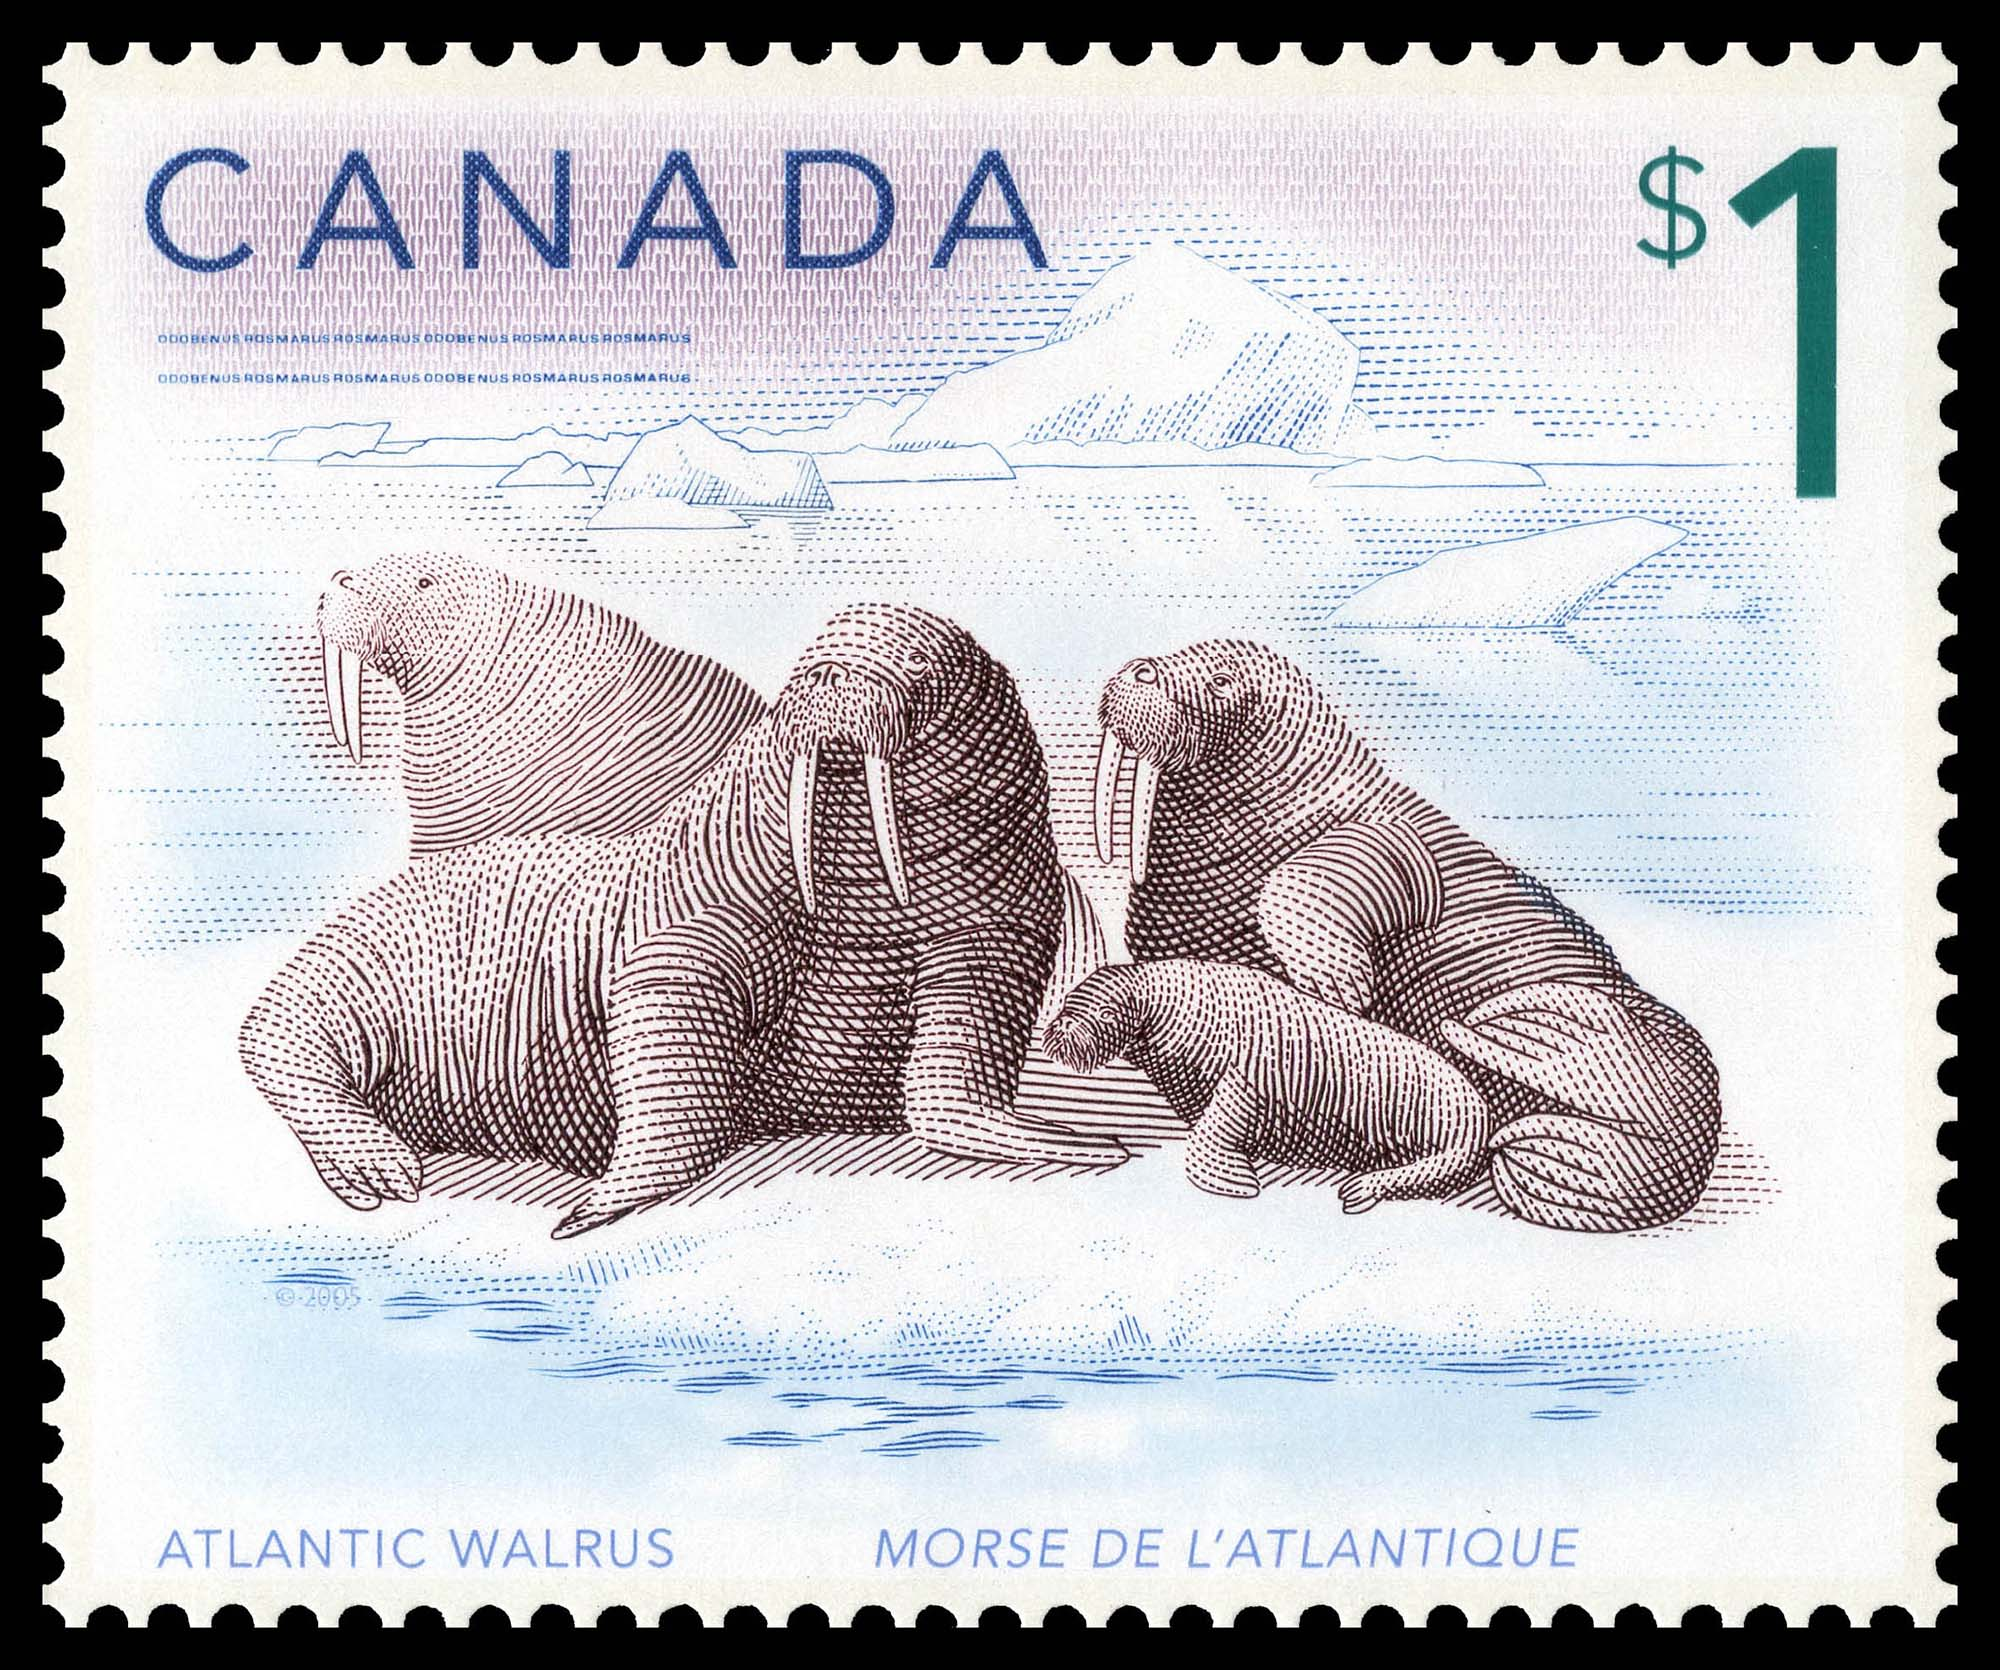 Atlantic walrus Canada Postage Stamp | Canadian Animals